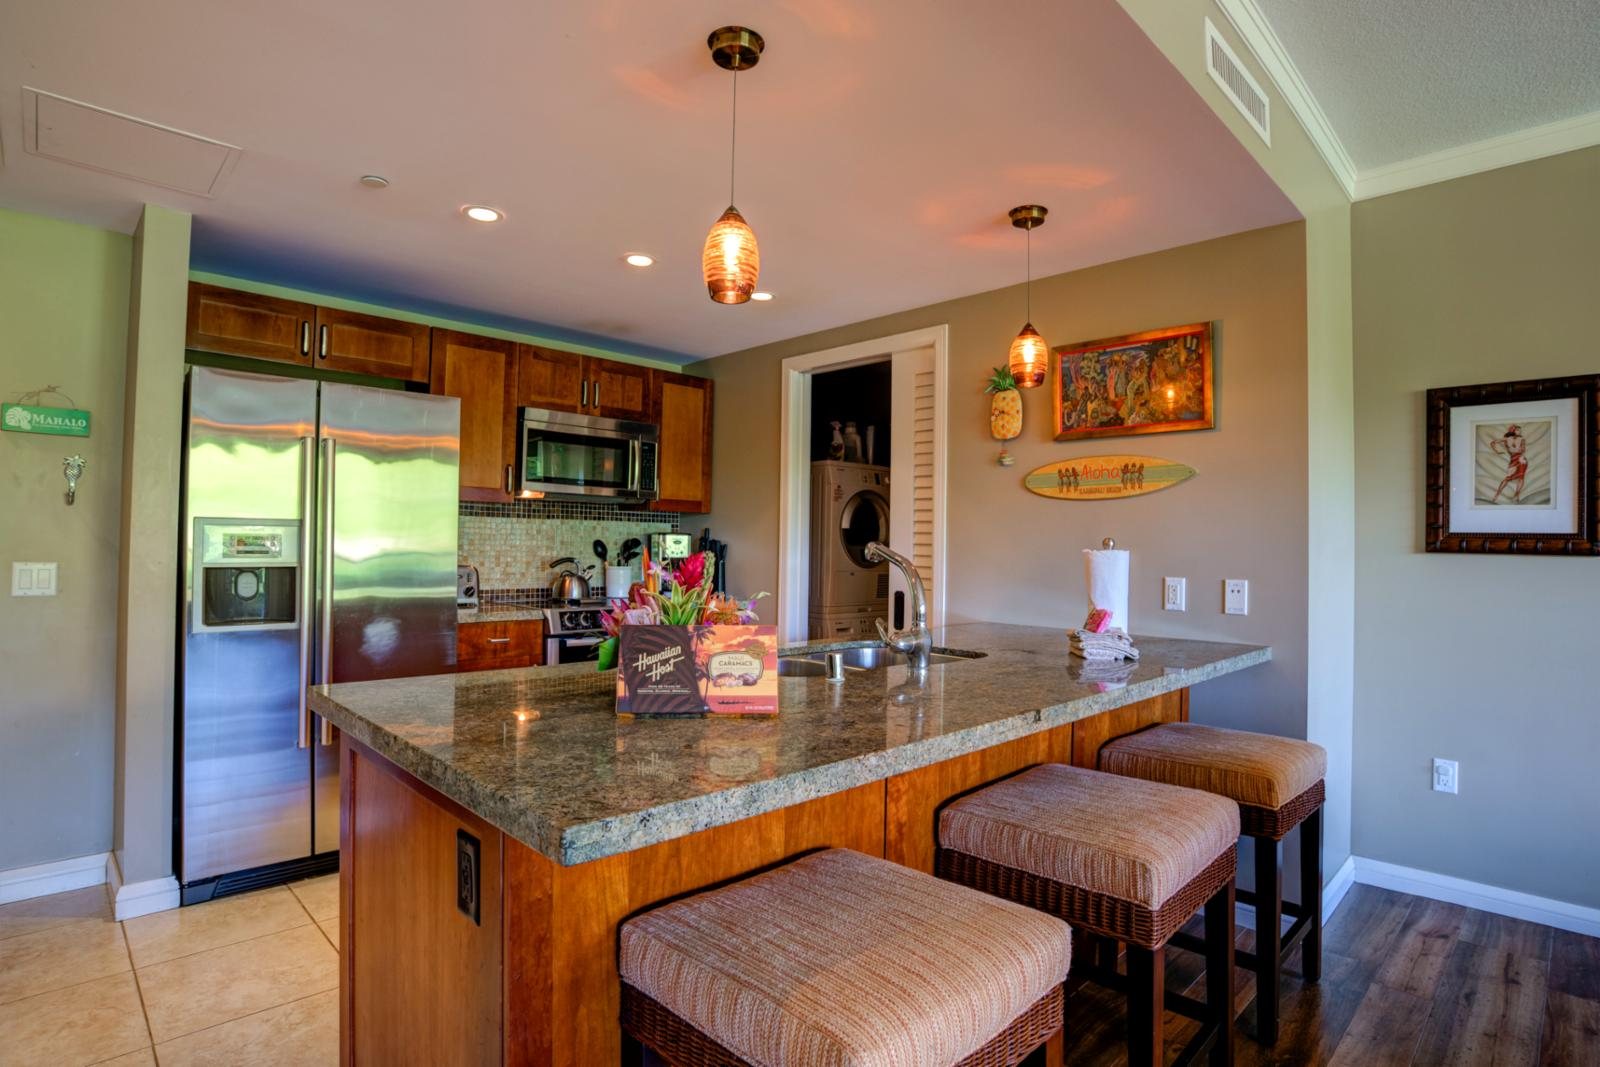 Breakfast bar seating for (3)